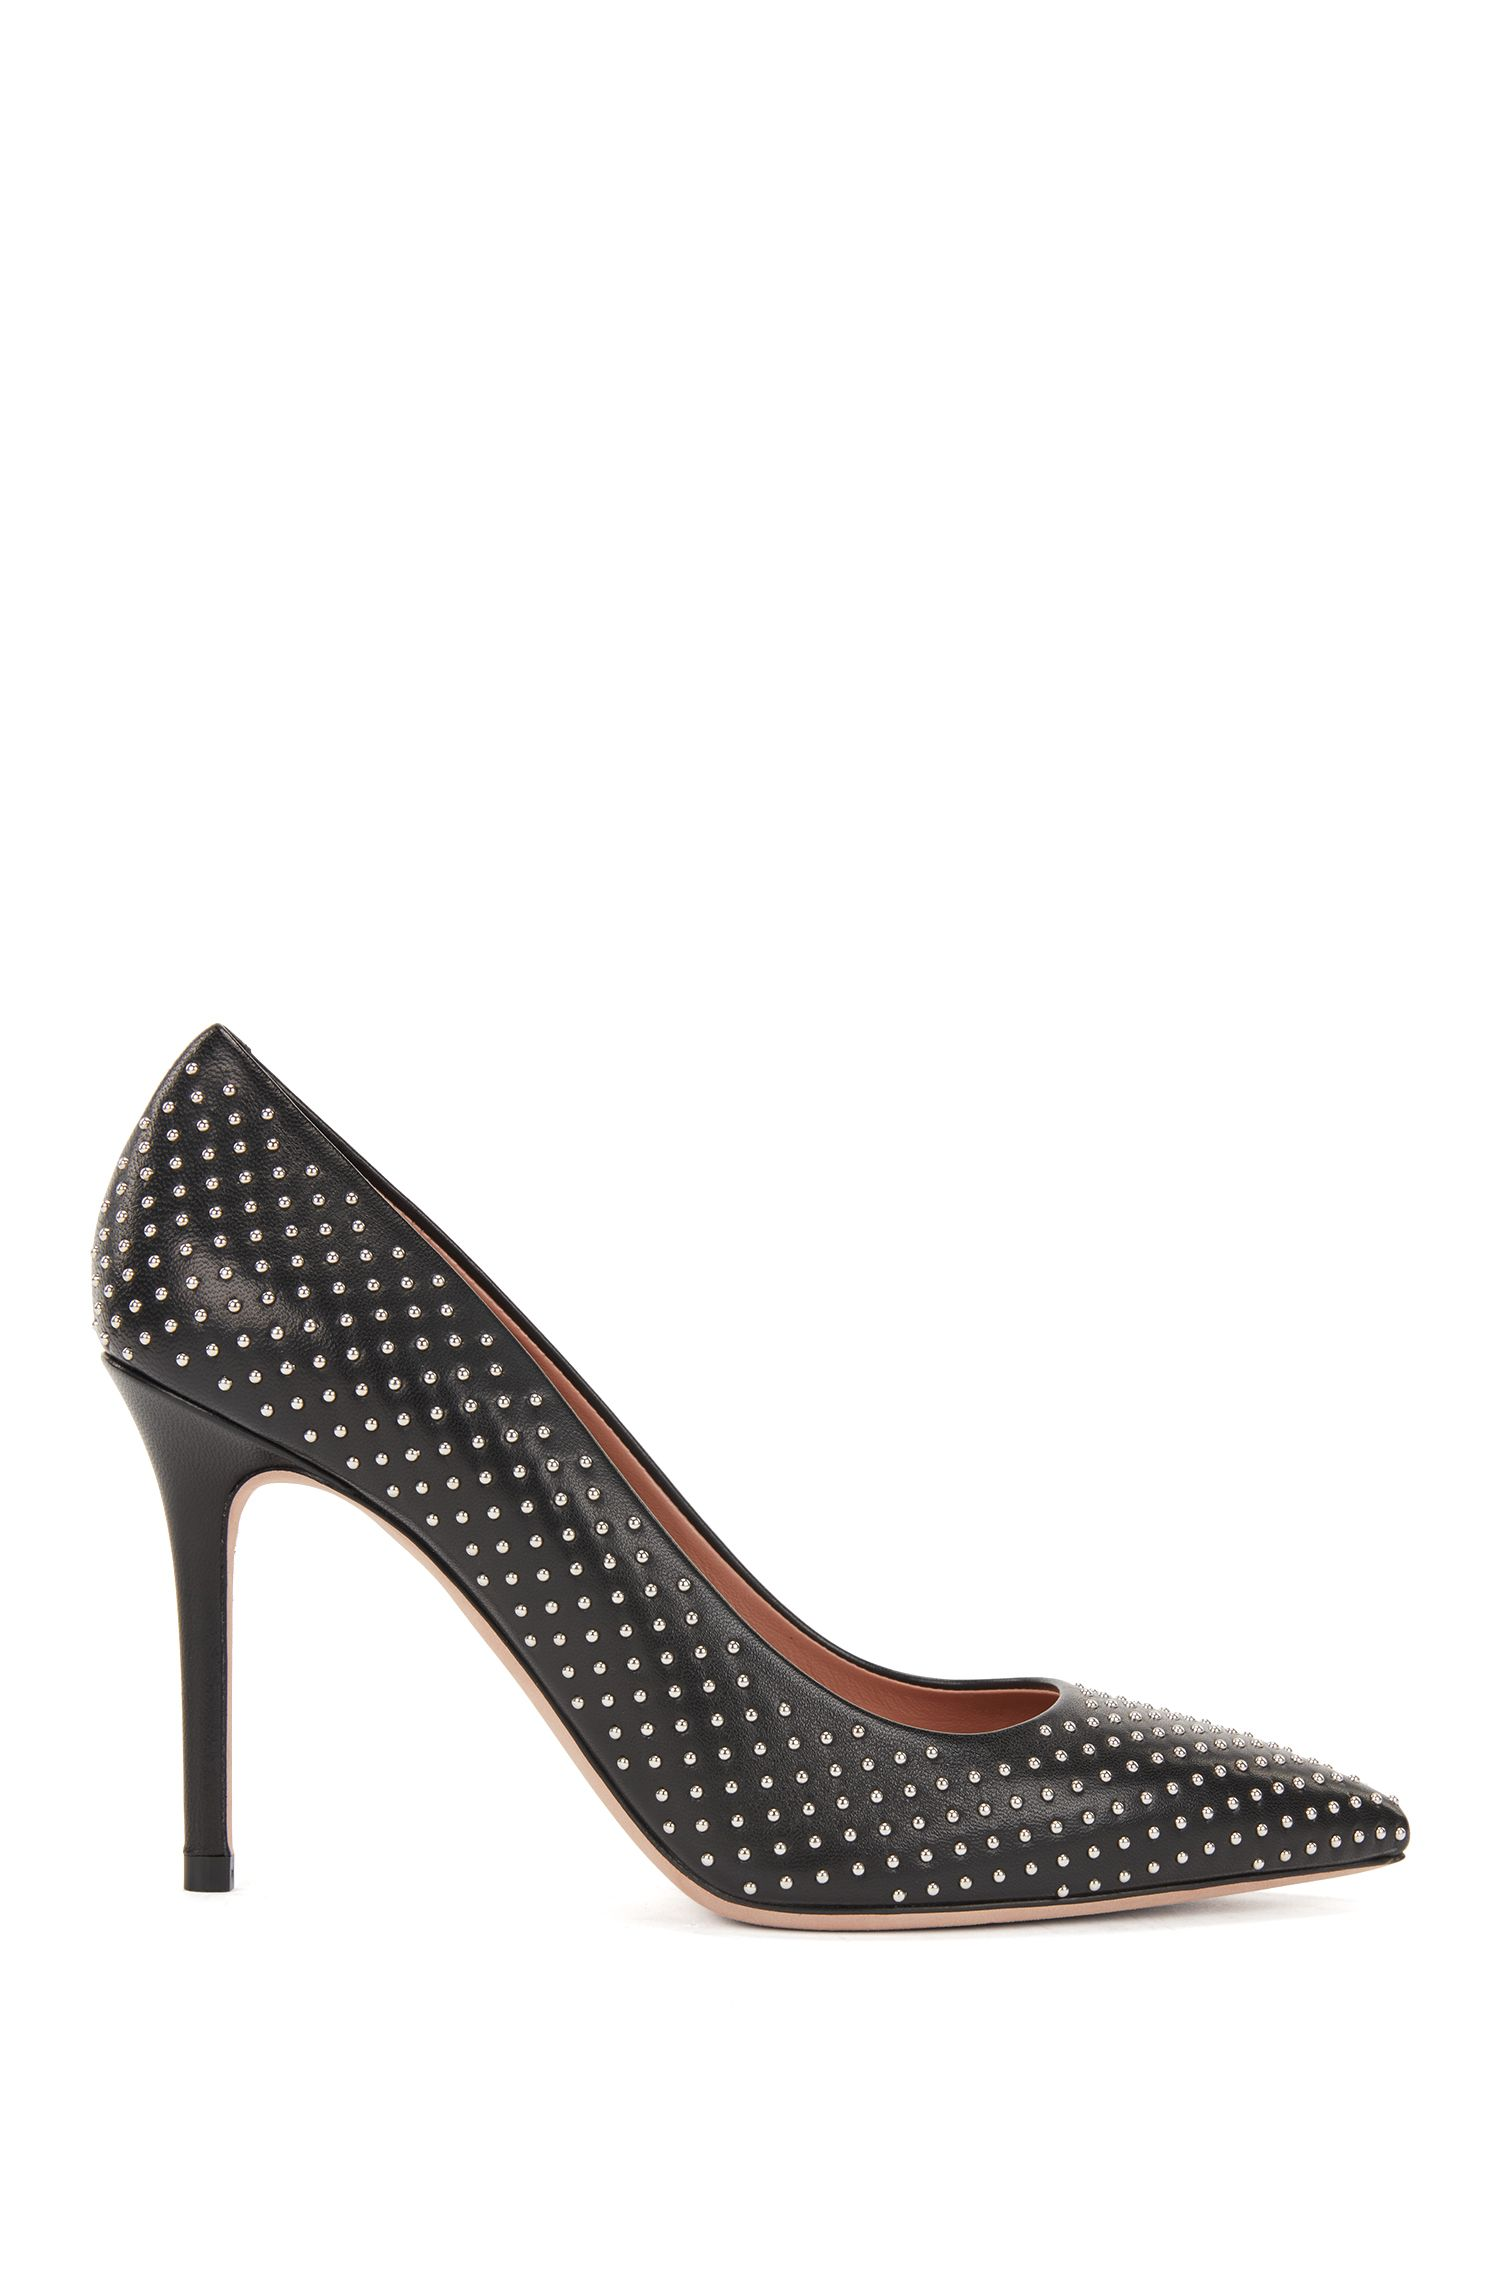 High-heeled pumps in Italian lambskin with stud detailing, Black